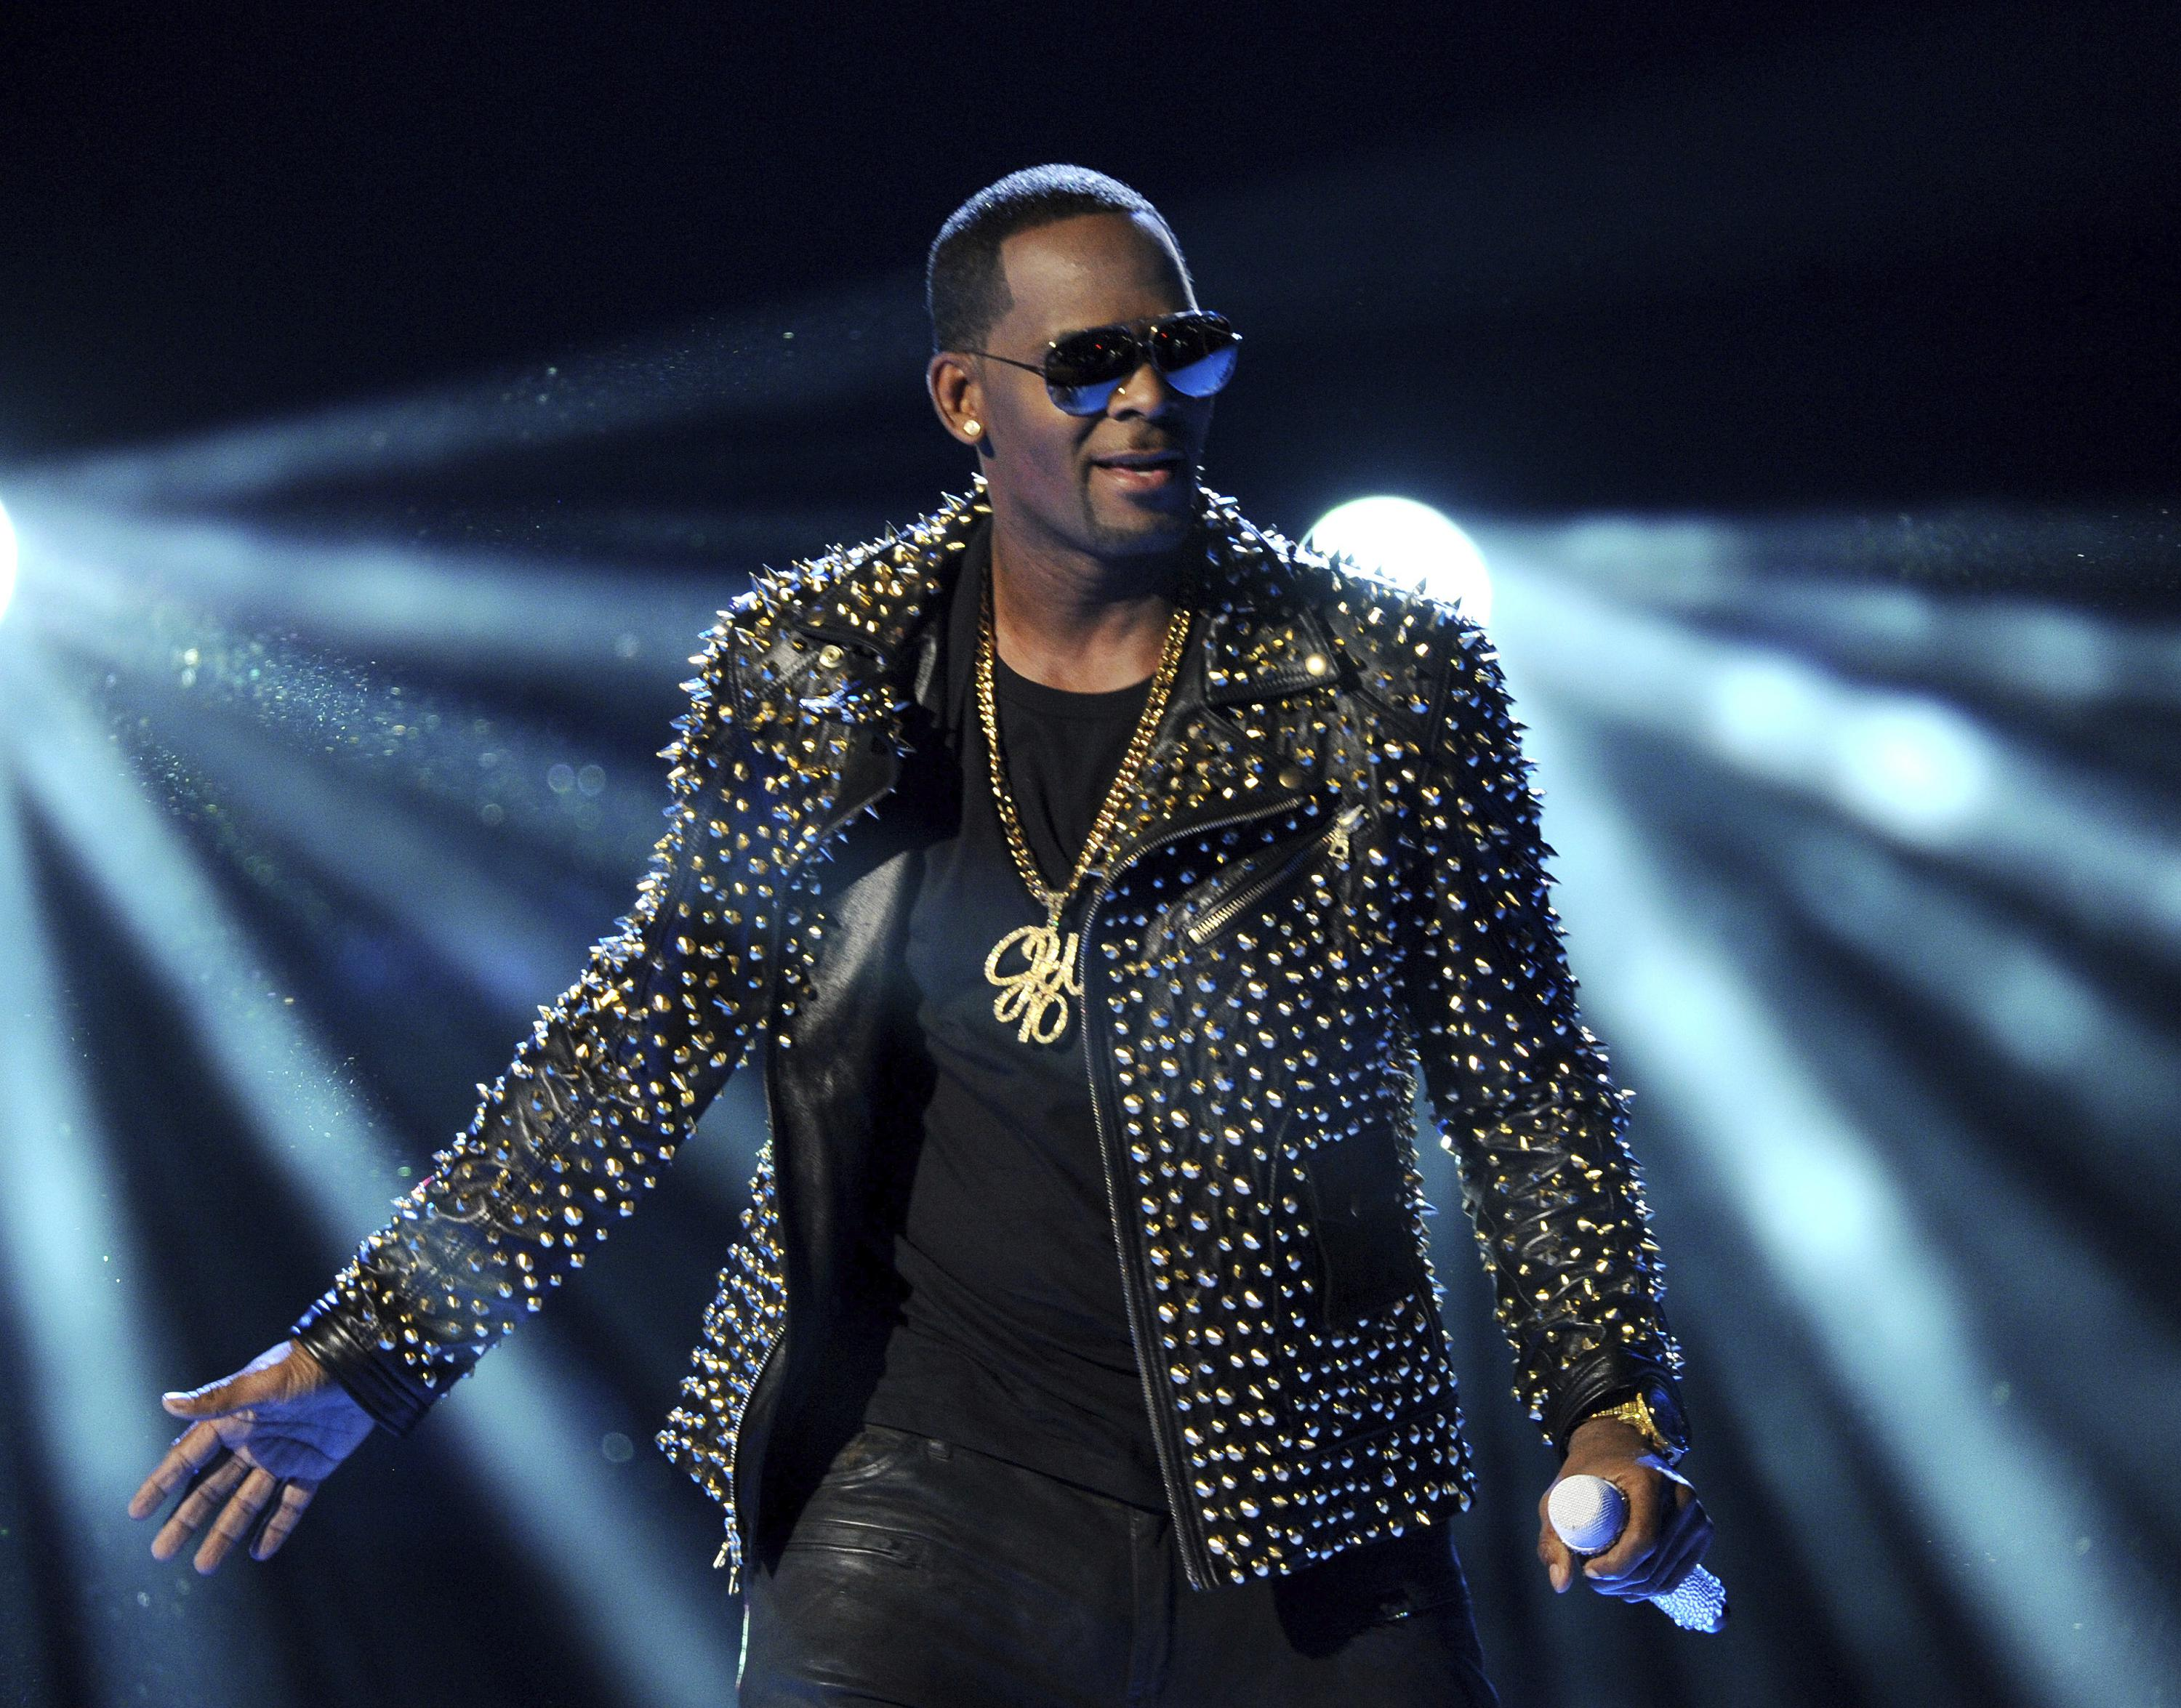 R. Kelly's life, from troubled talent to trafficking trial - Associated Press